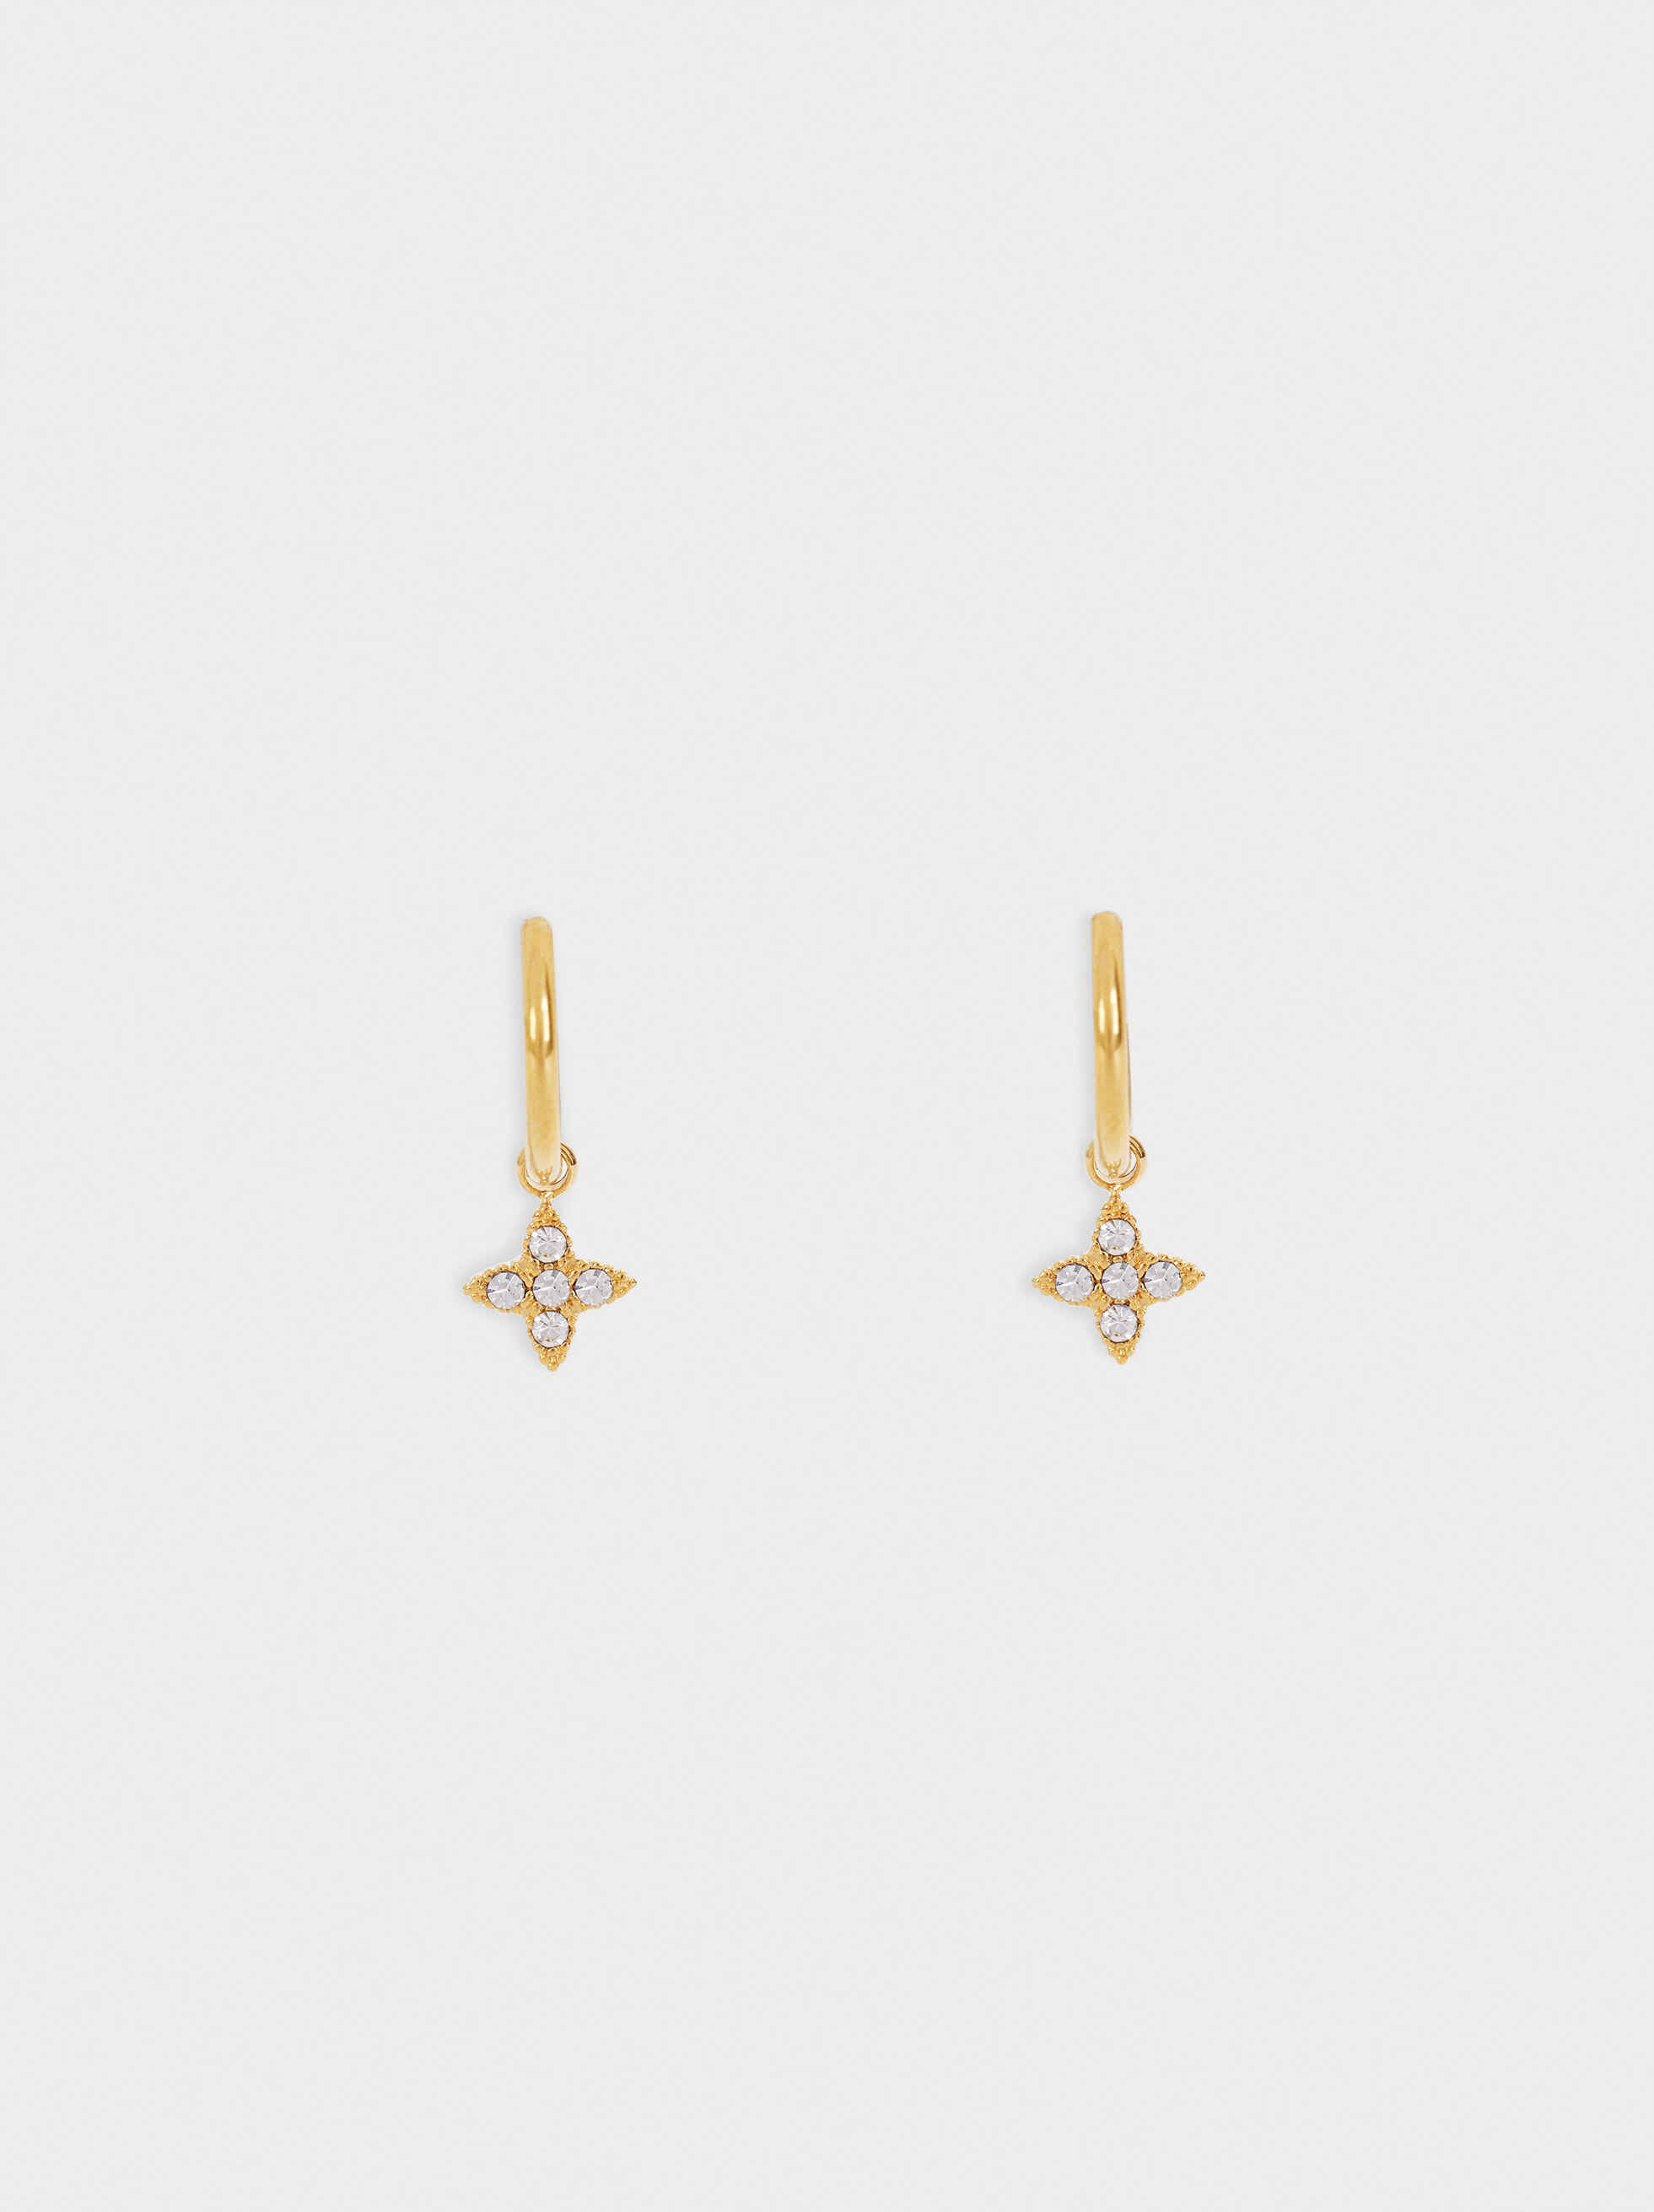 Stainless Steel Golden-Finish Small Earrings, , hi-res